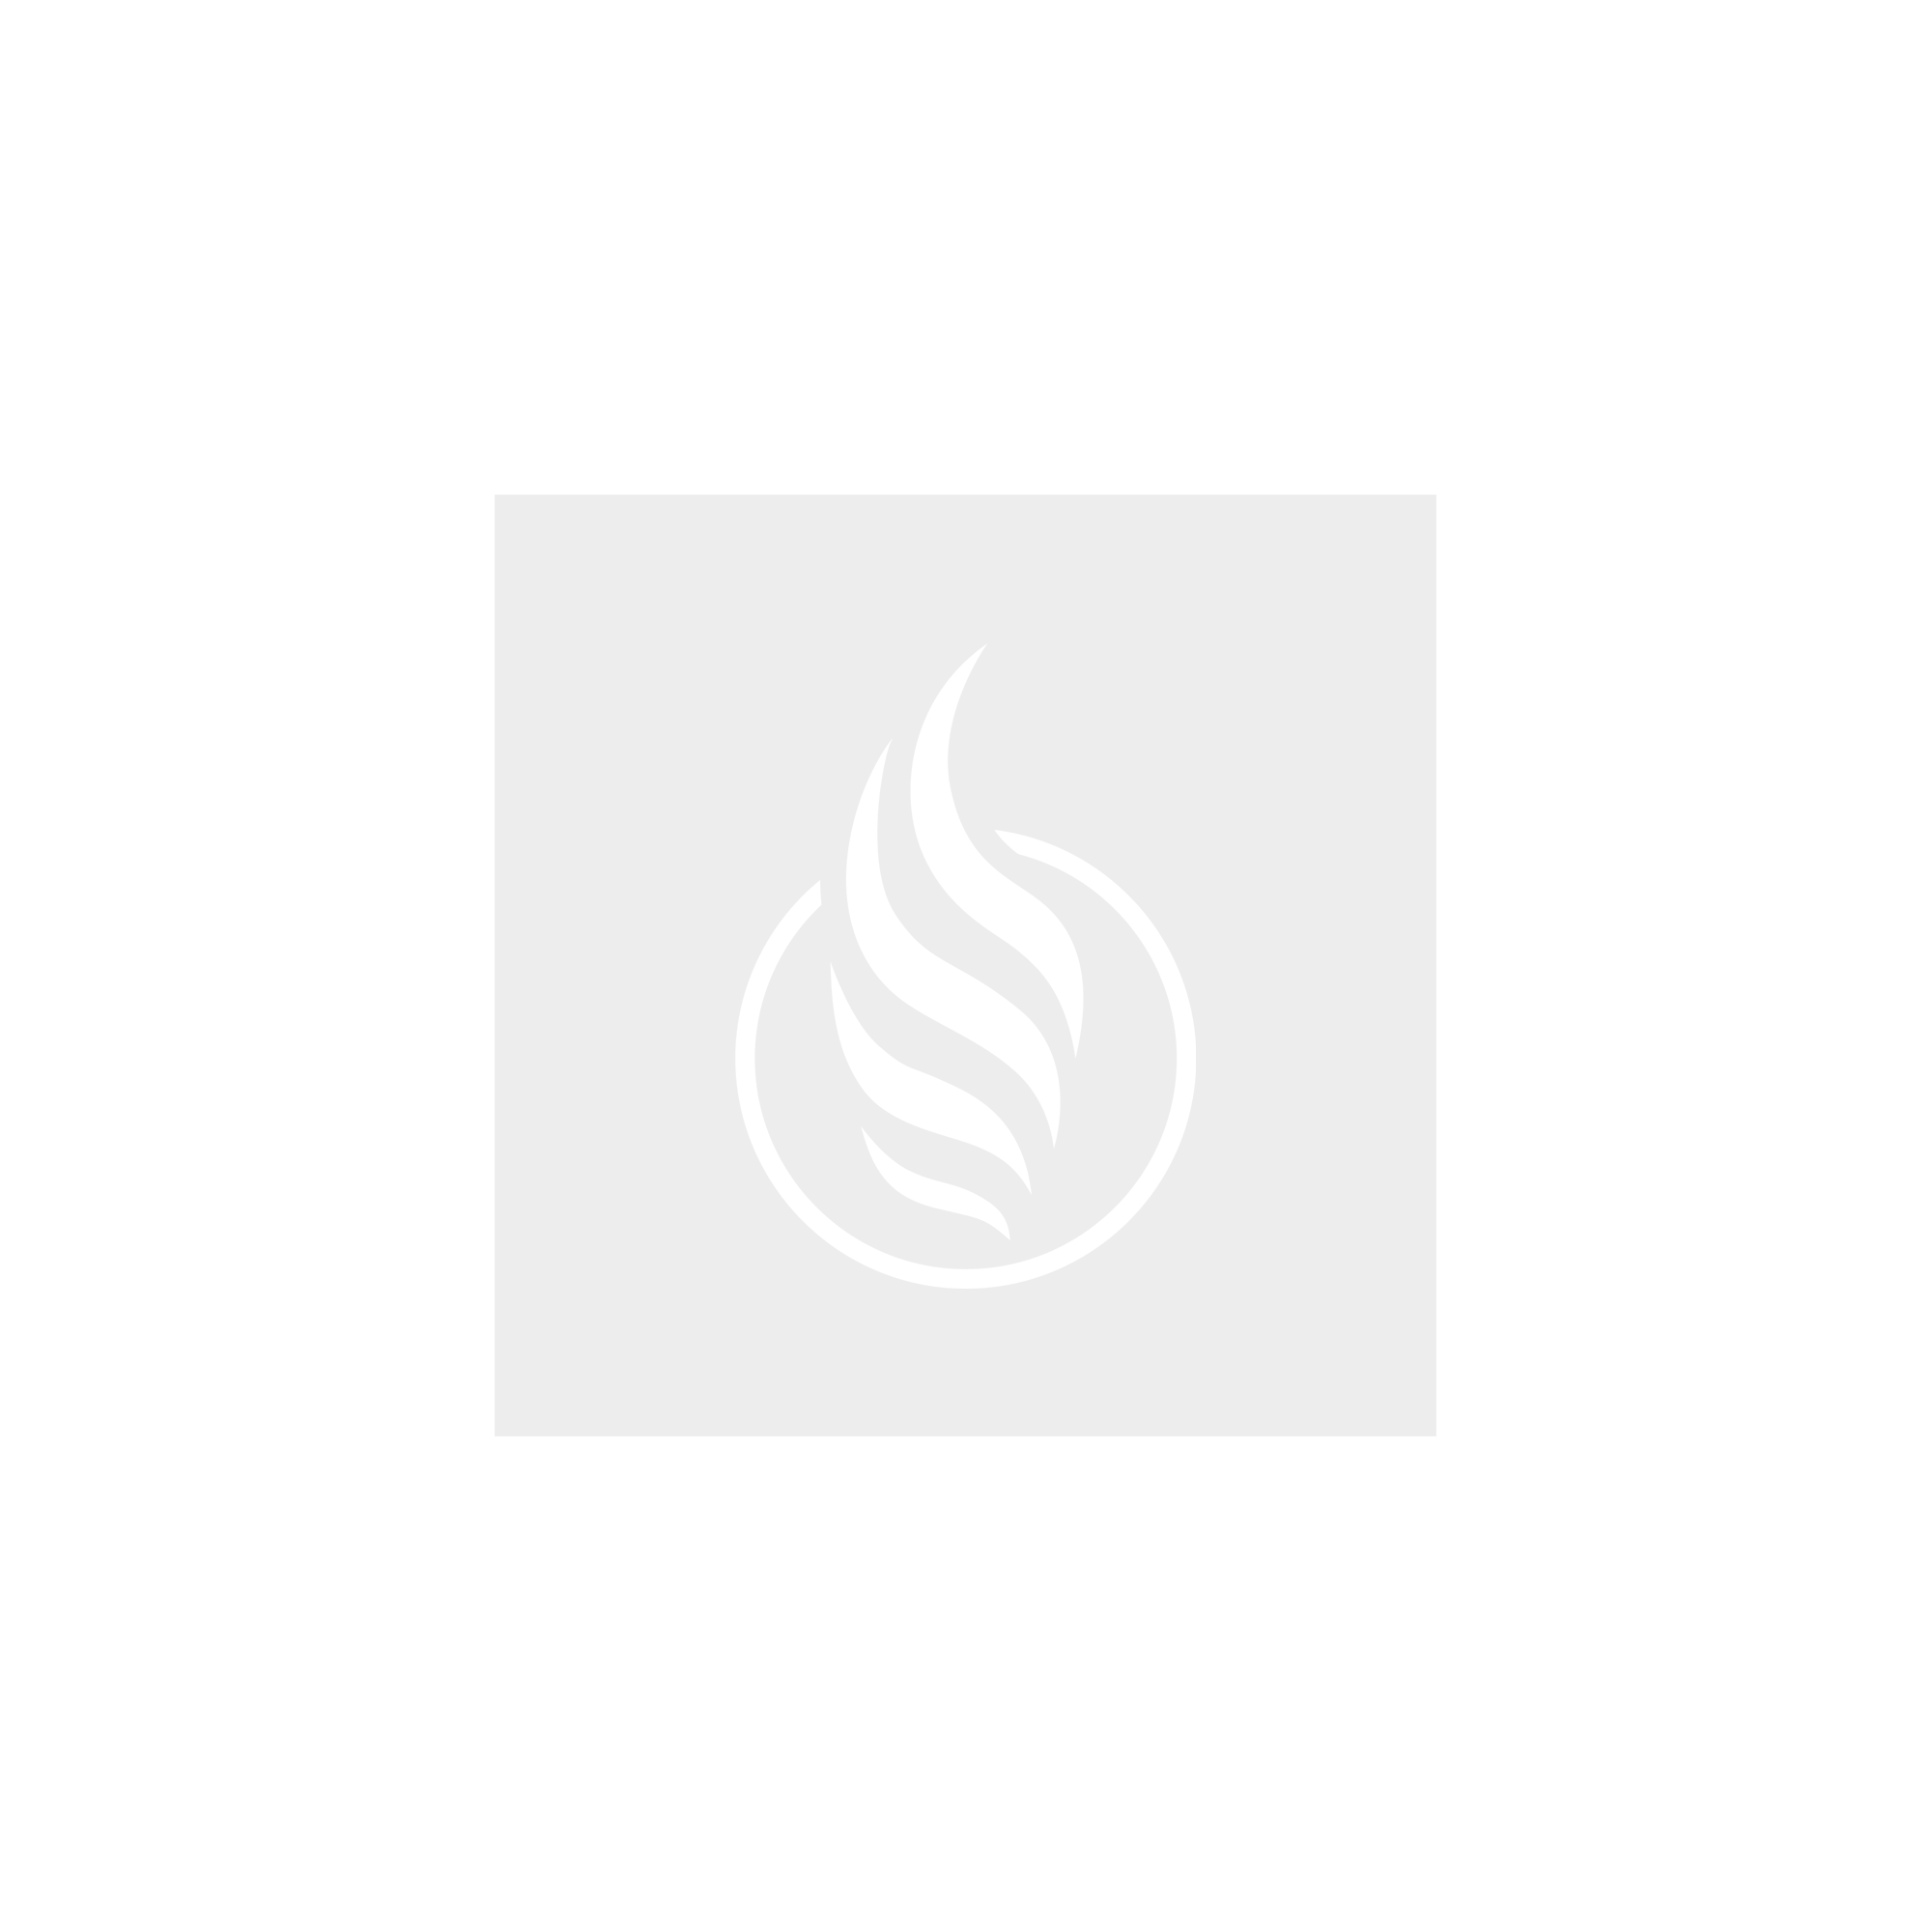 G16 DC 0.6ohm Coil 5 pack